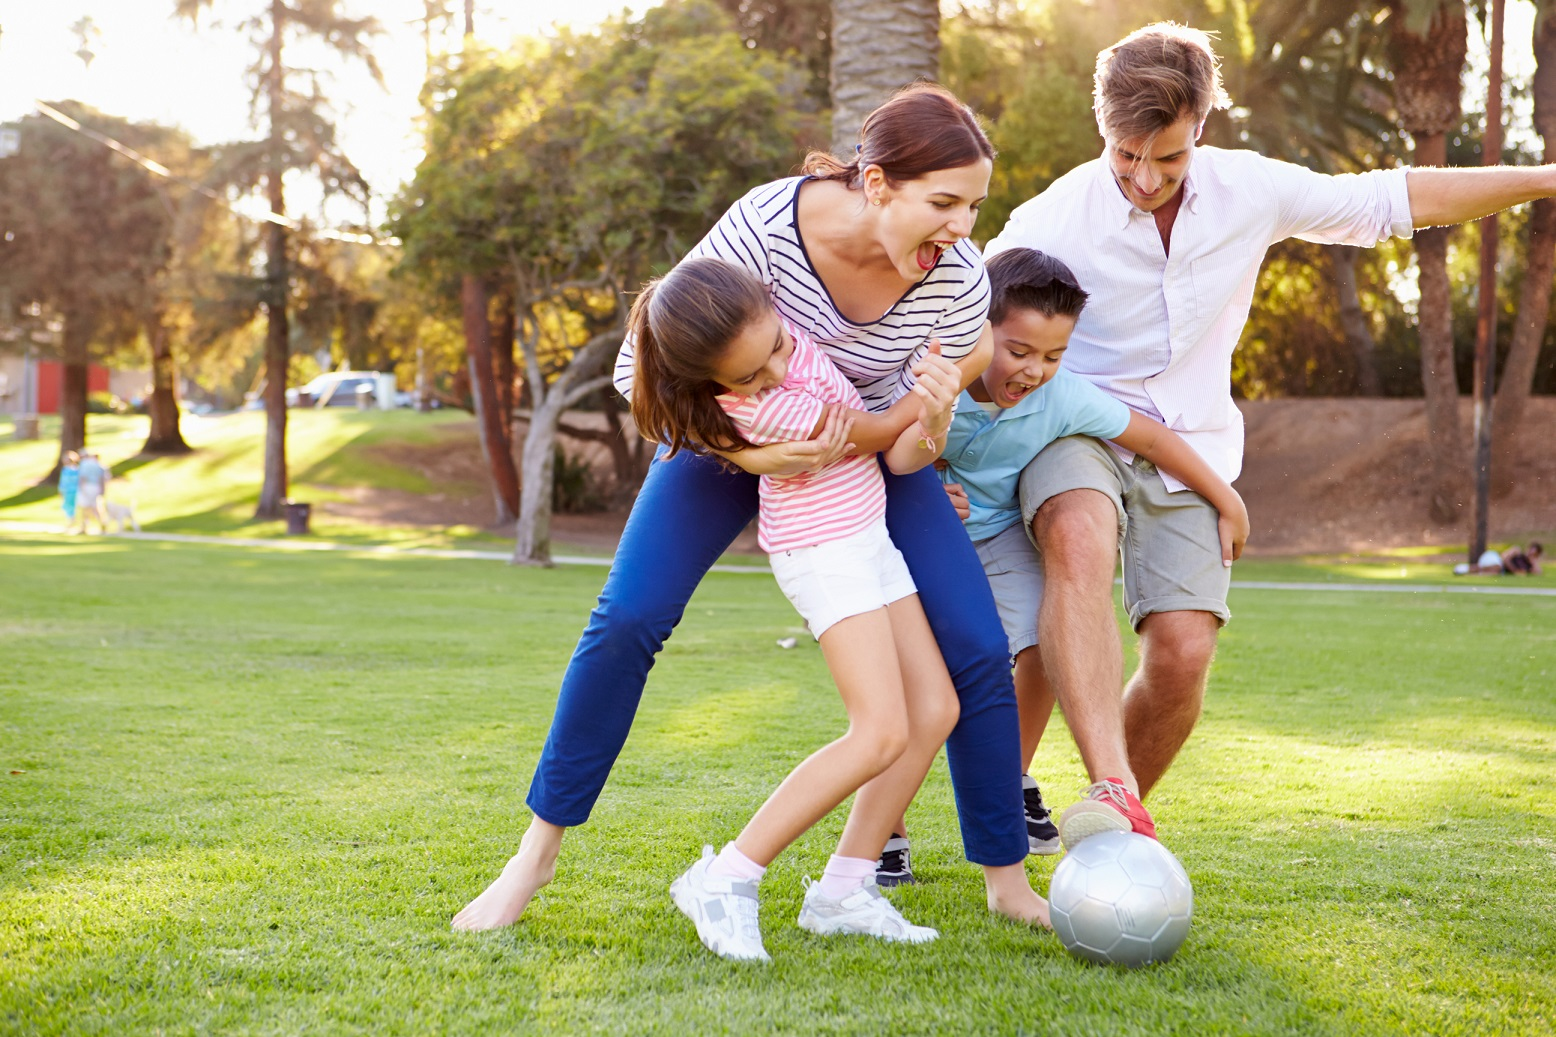 Young family playing soccer on a field